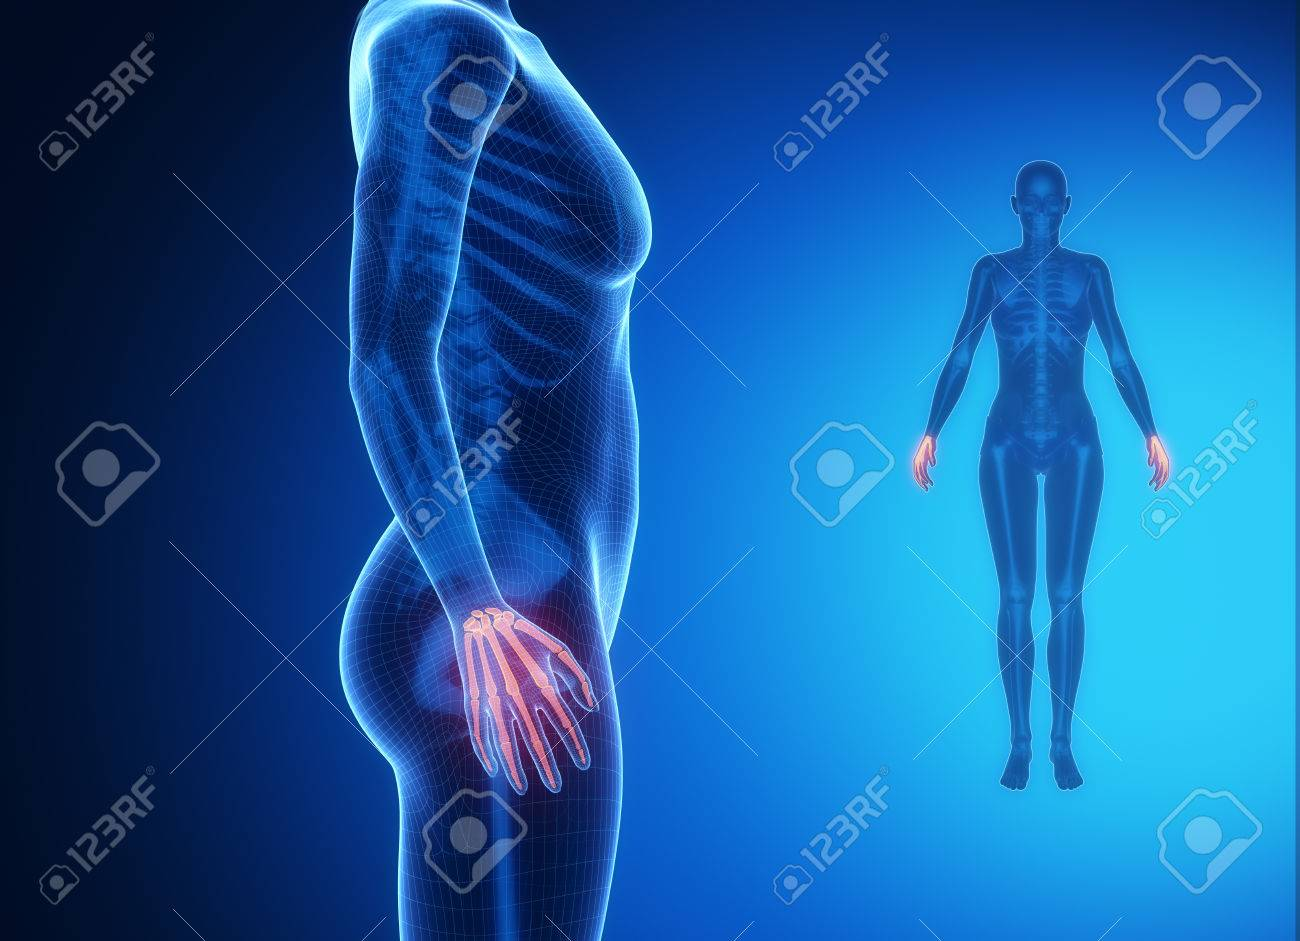 WRIST Bone Anatomy X-ray Scan Stock Photo, Picture And Royalty Free ...